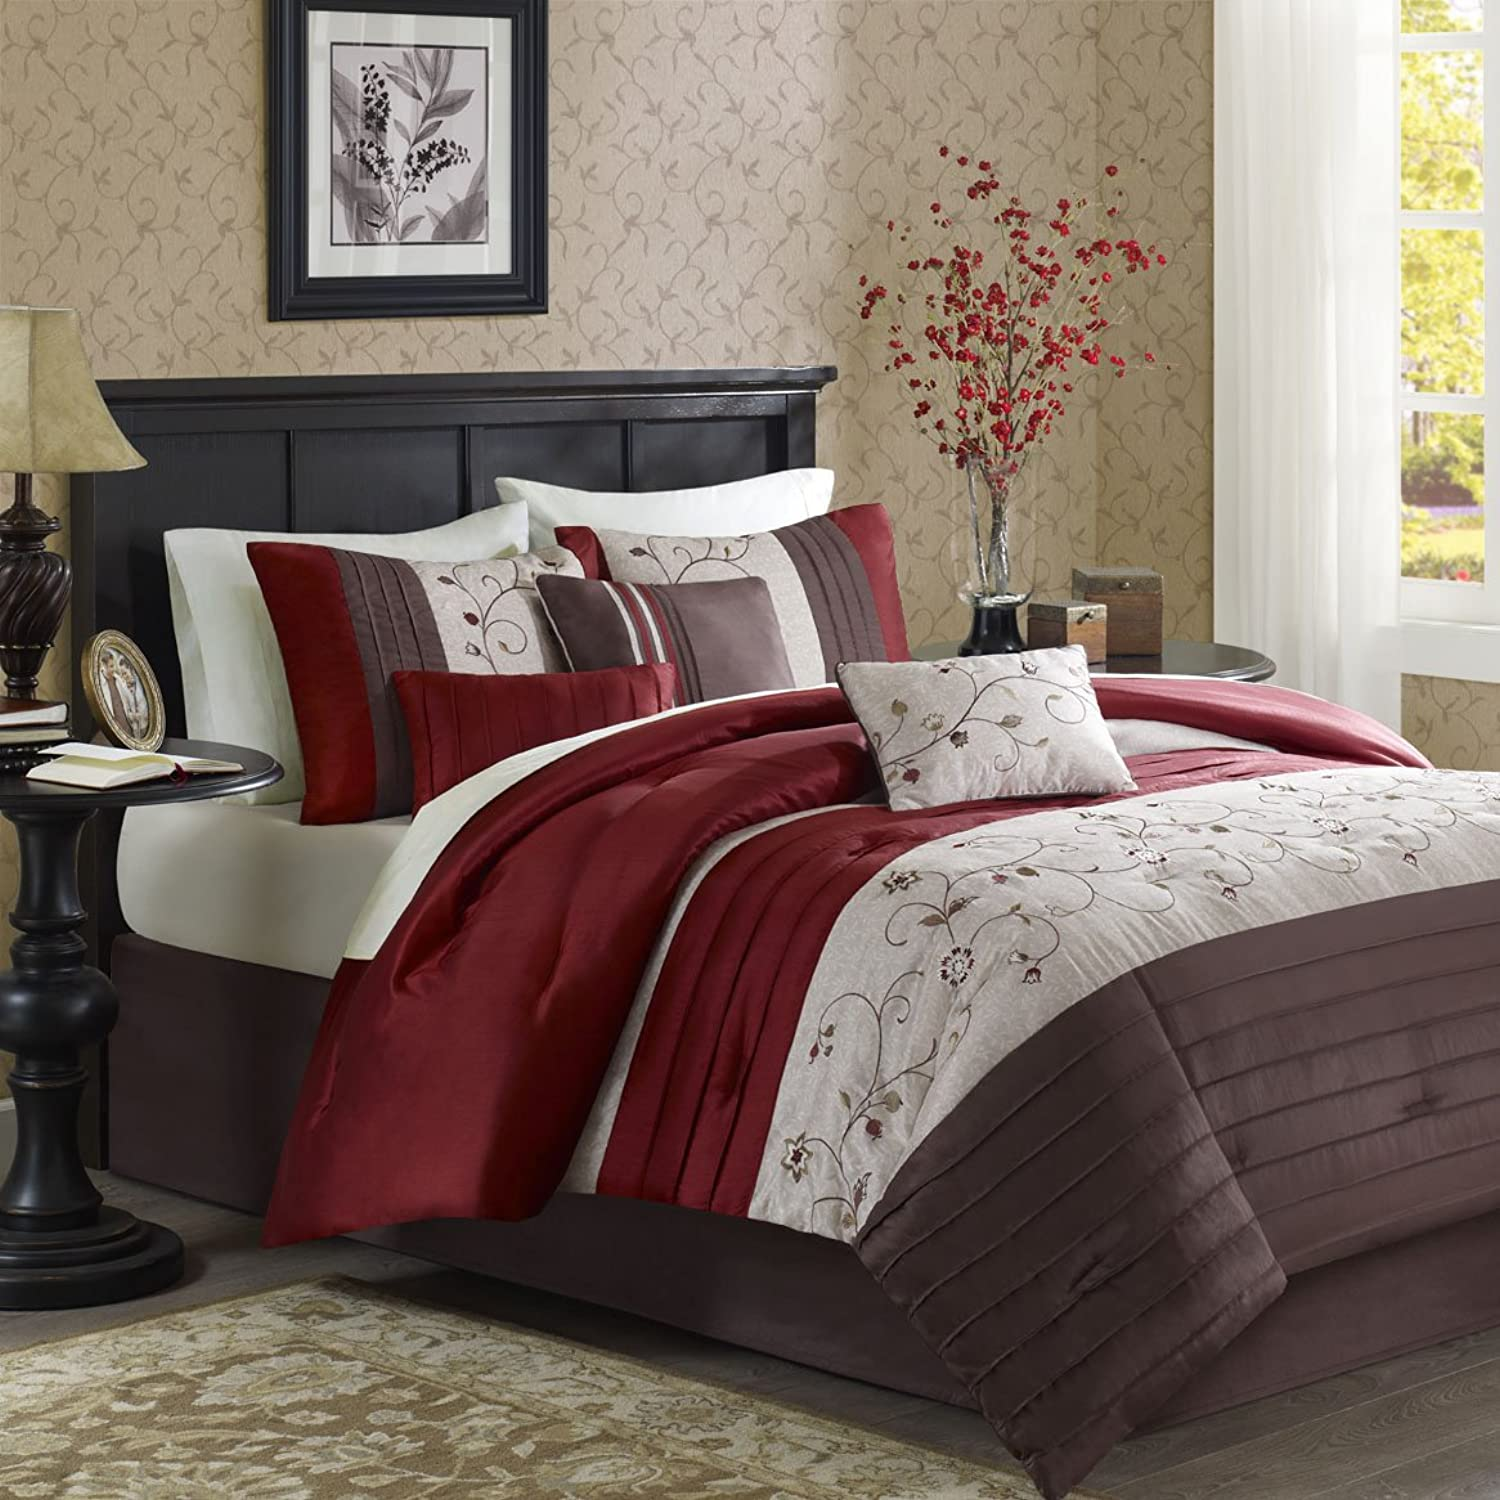 Madison Park Serene Duvet Cover Full Queen Size - Red, Embroidered Duvet Cover Set – 6 Piece – Faux Silk Light Weight Bed Comforter Covers